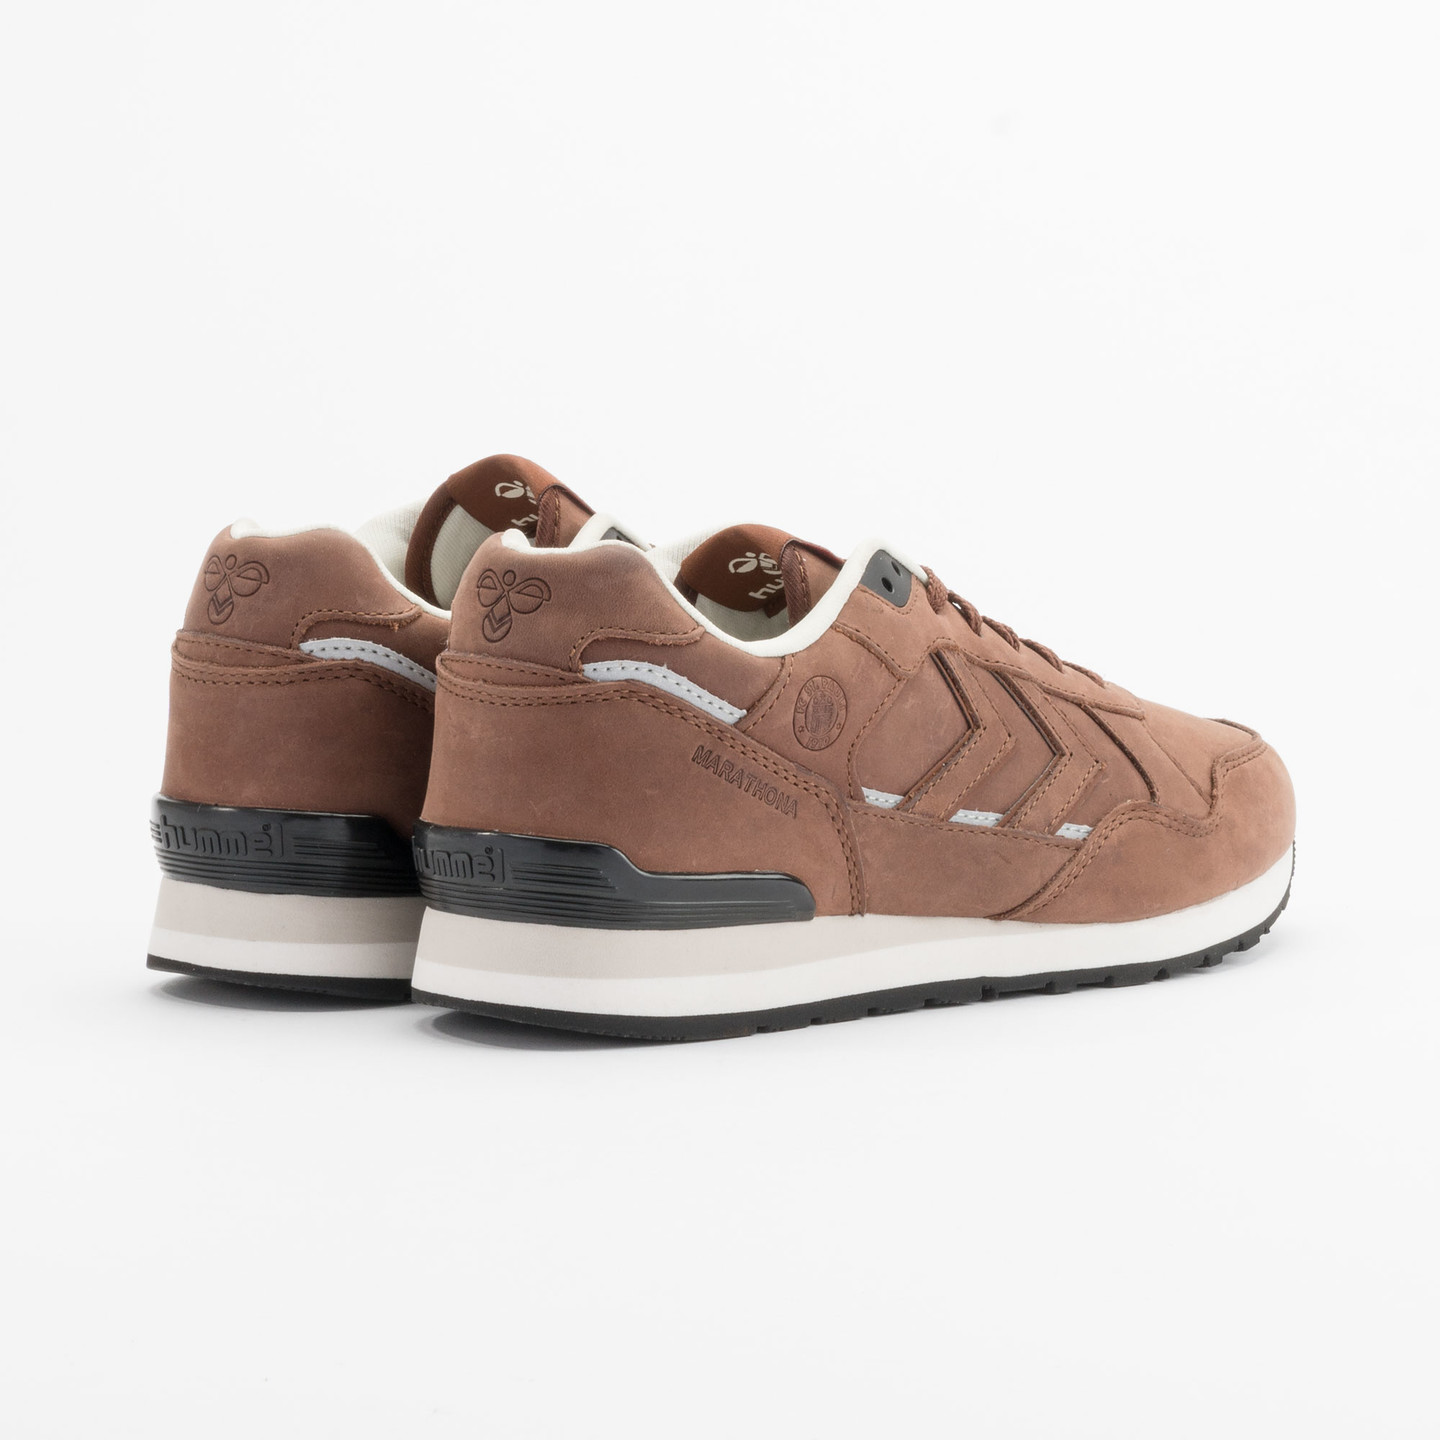 Hummel Marathona Low x St.Pauli Dark Brown 63-821-8225-46